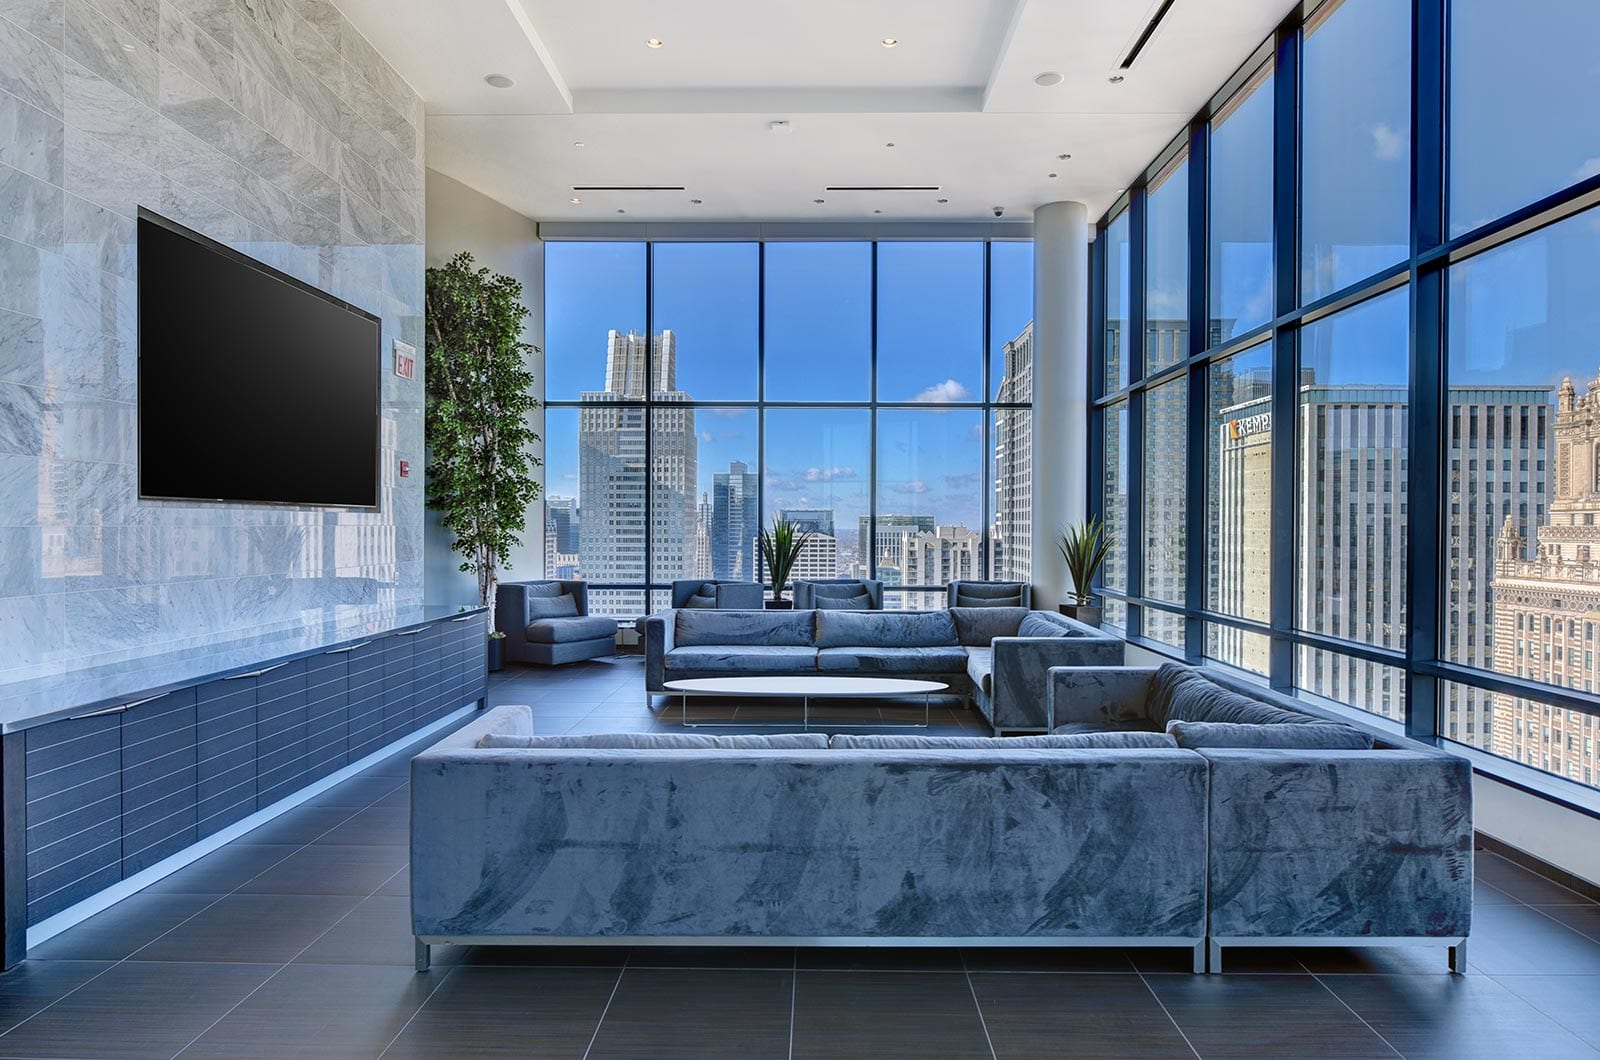 Luxury-Living-High-Rise-Penthouse-Apartment-Communities-Apartment-Photography-360-Virtual-Tours-For-Apartments-Apartment-Virtual-Tour-Company-Apartment-360-Tours